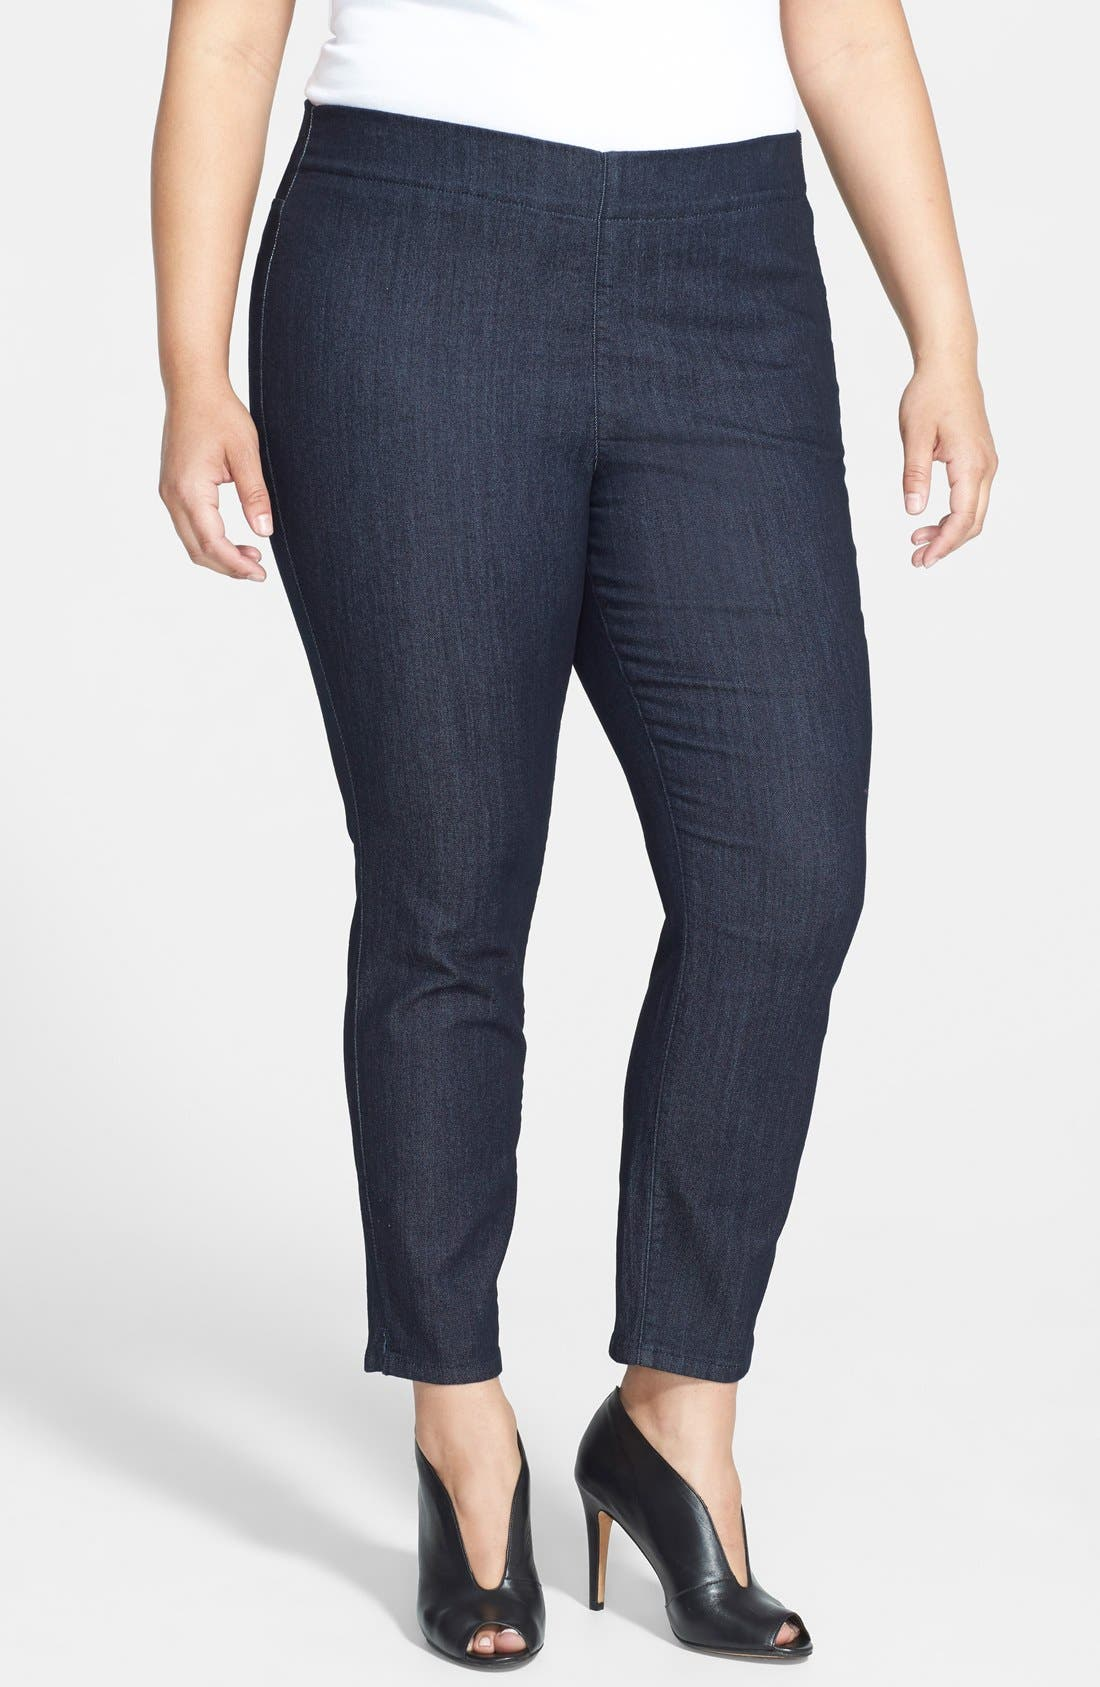 Main Image - NYDJ 'Millie' Stretch Ankle Jeans (Dark Enzyme) (Plus Size)